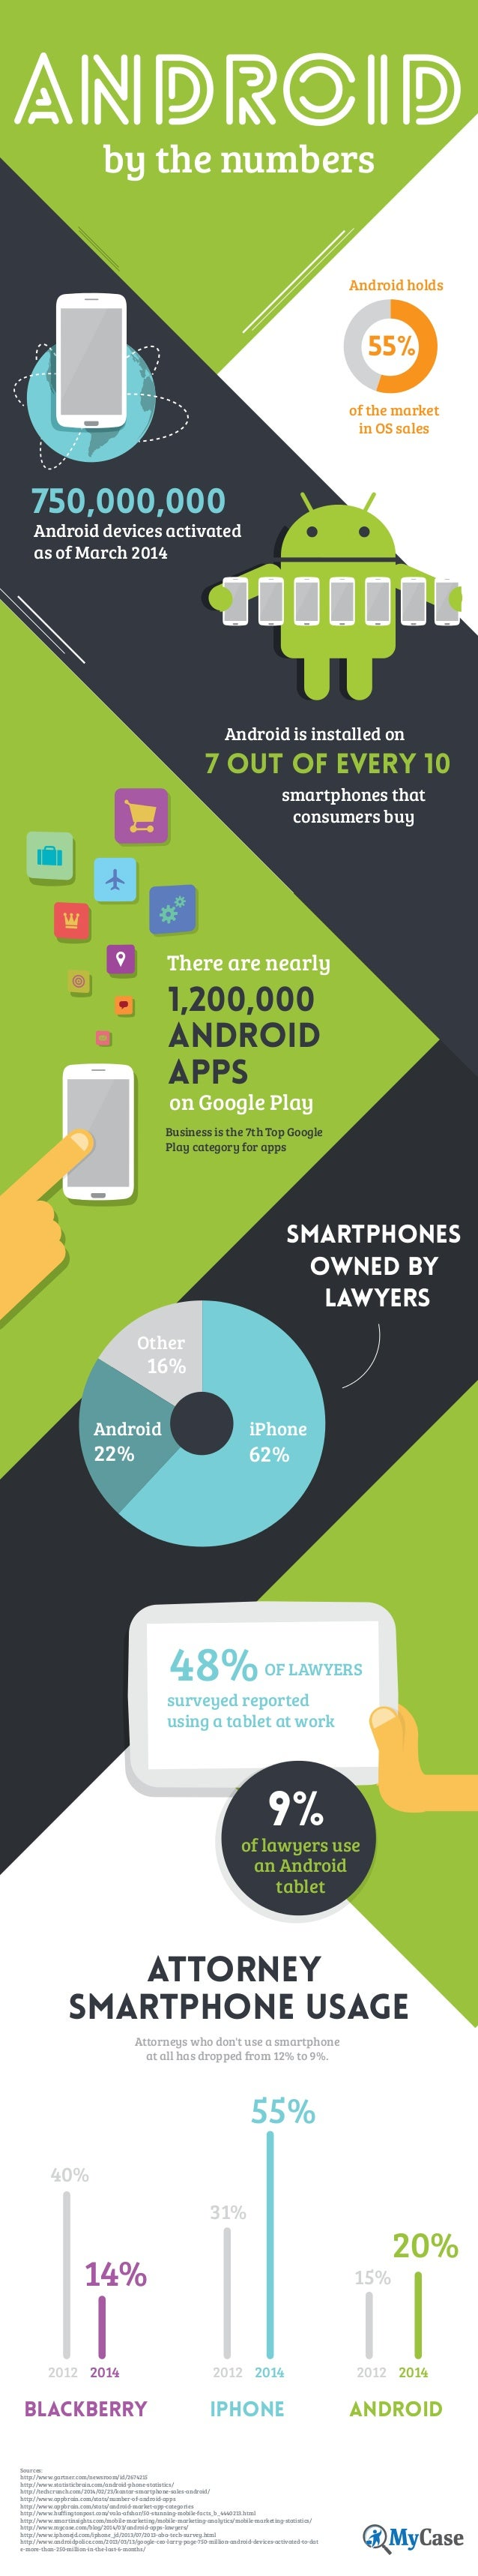 Android By The Numbers